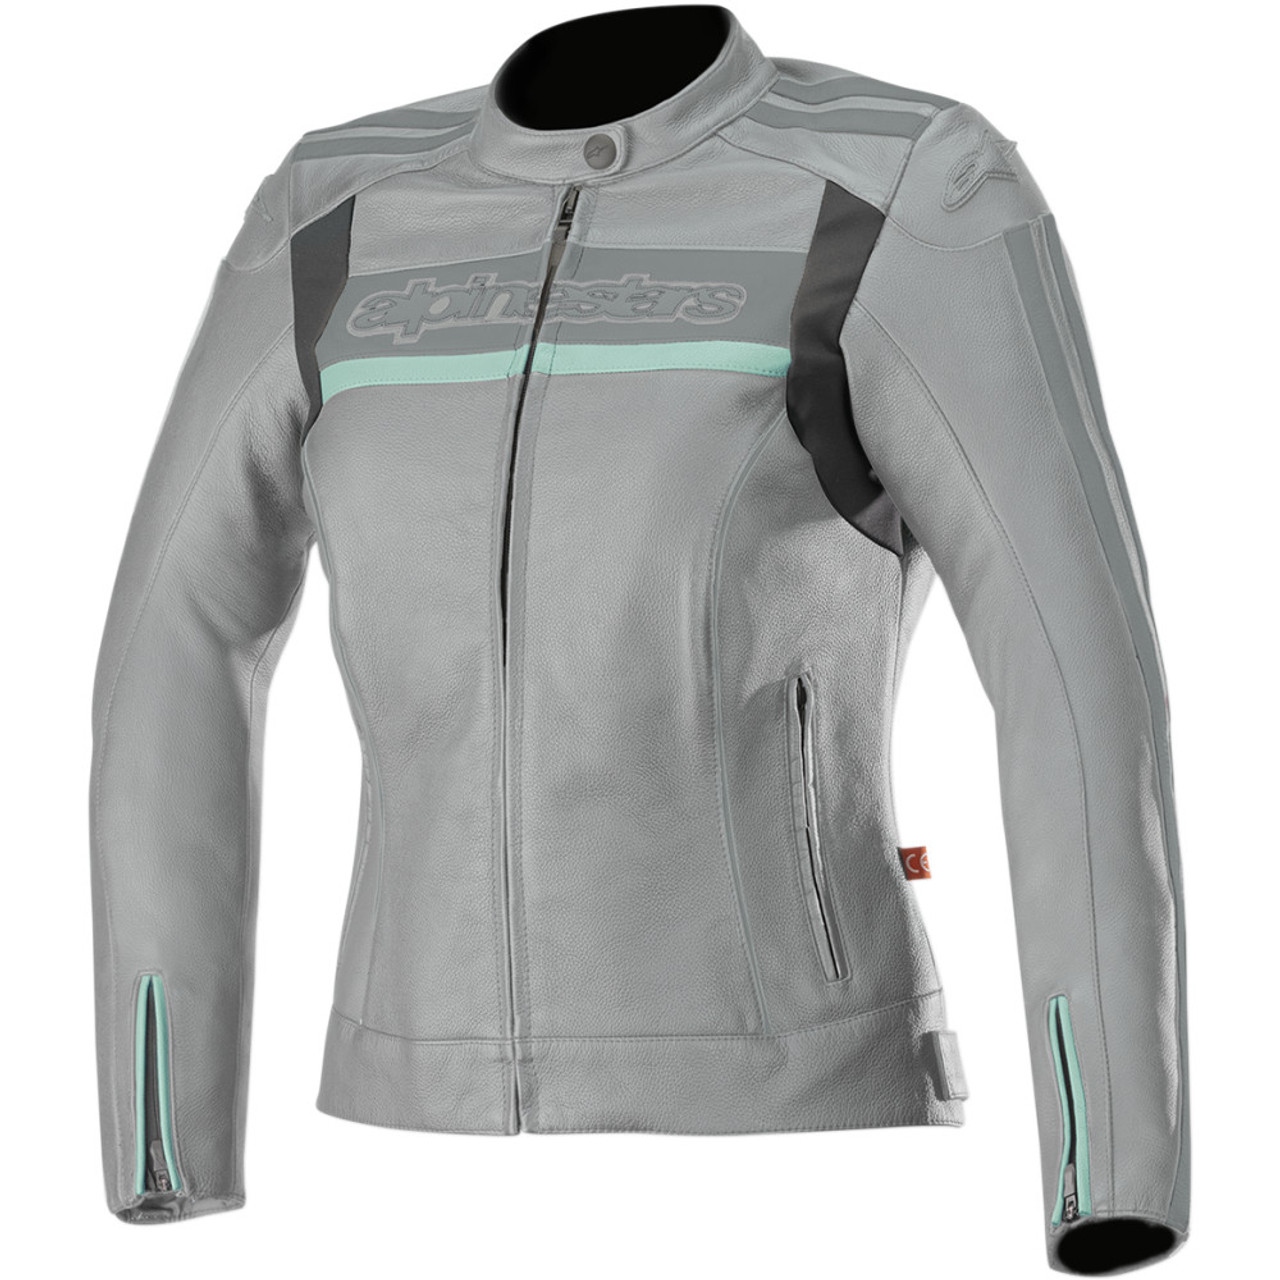 233973017cdc5 Alpinestars Dyno v2 Women s Aqua Gray Leather Jacket - Get Lowered Cycles